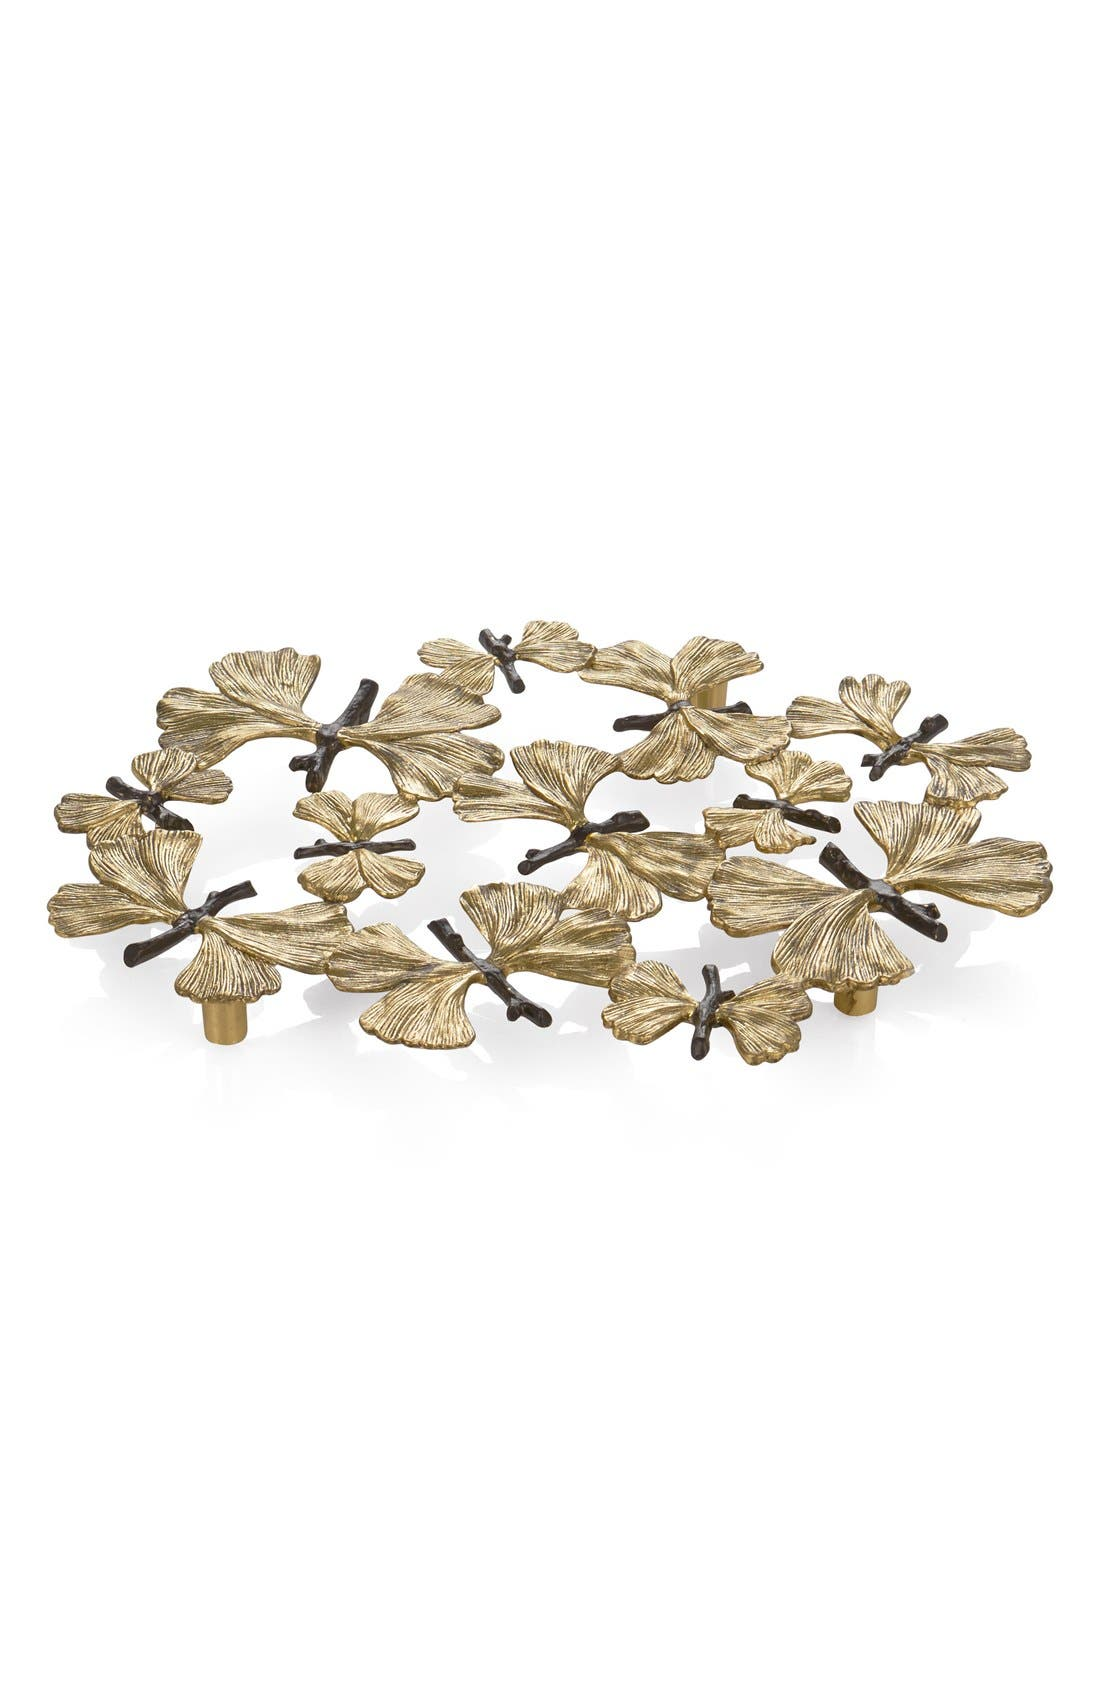 'Butterfly Ginkgo' Trivet,                         Main,                         color, Gold